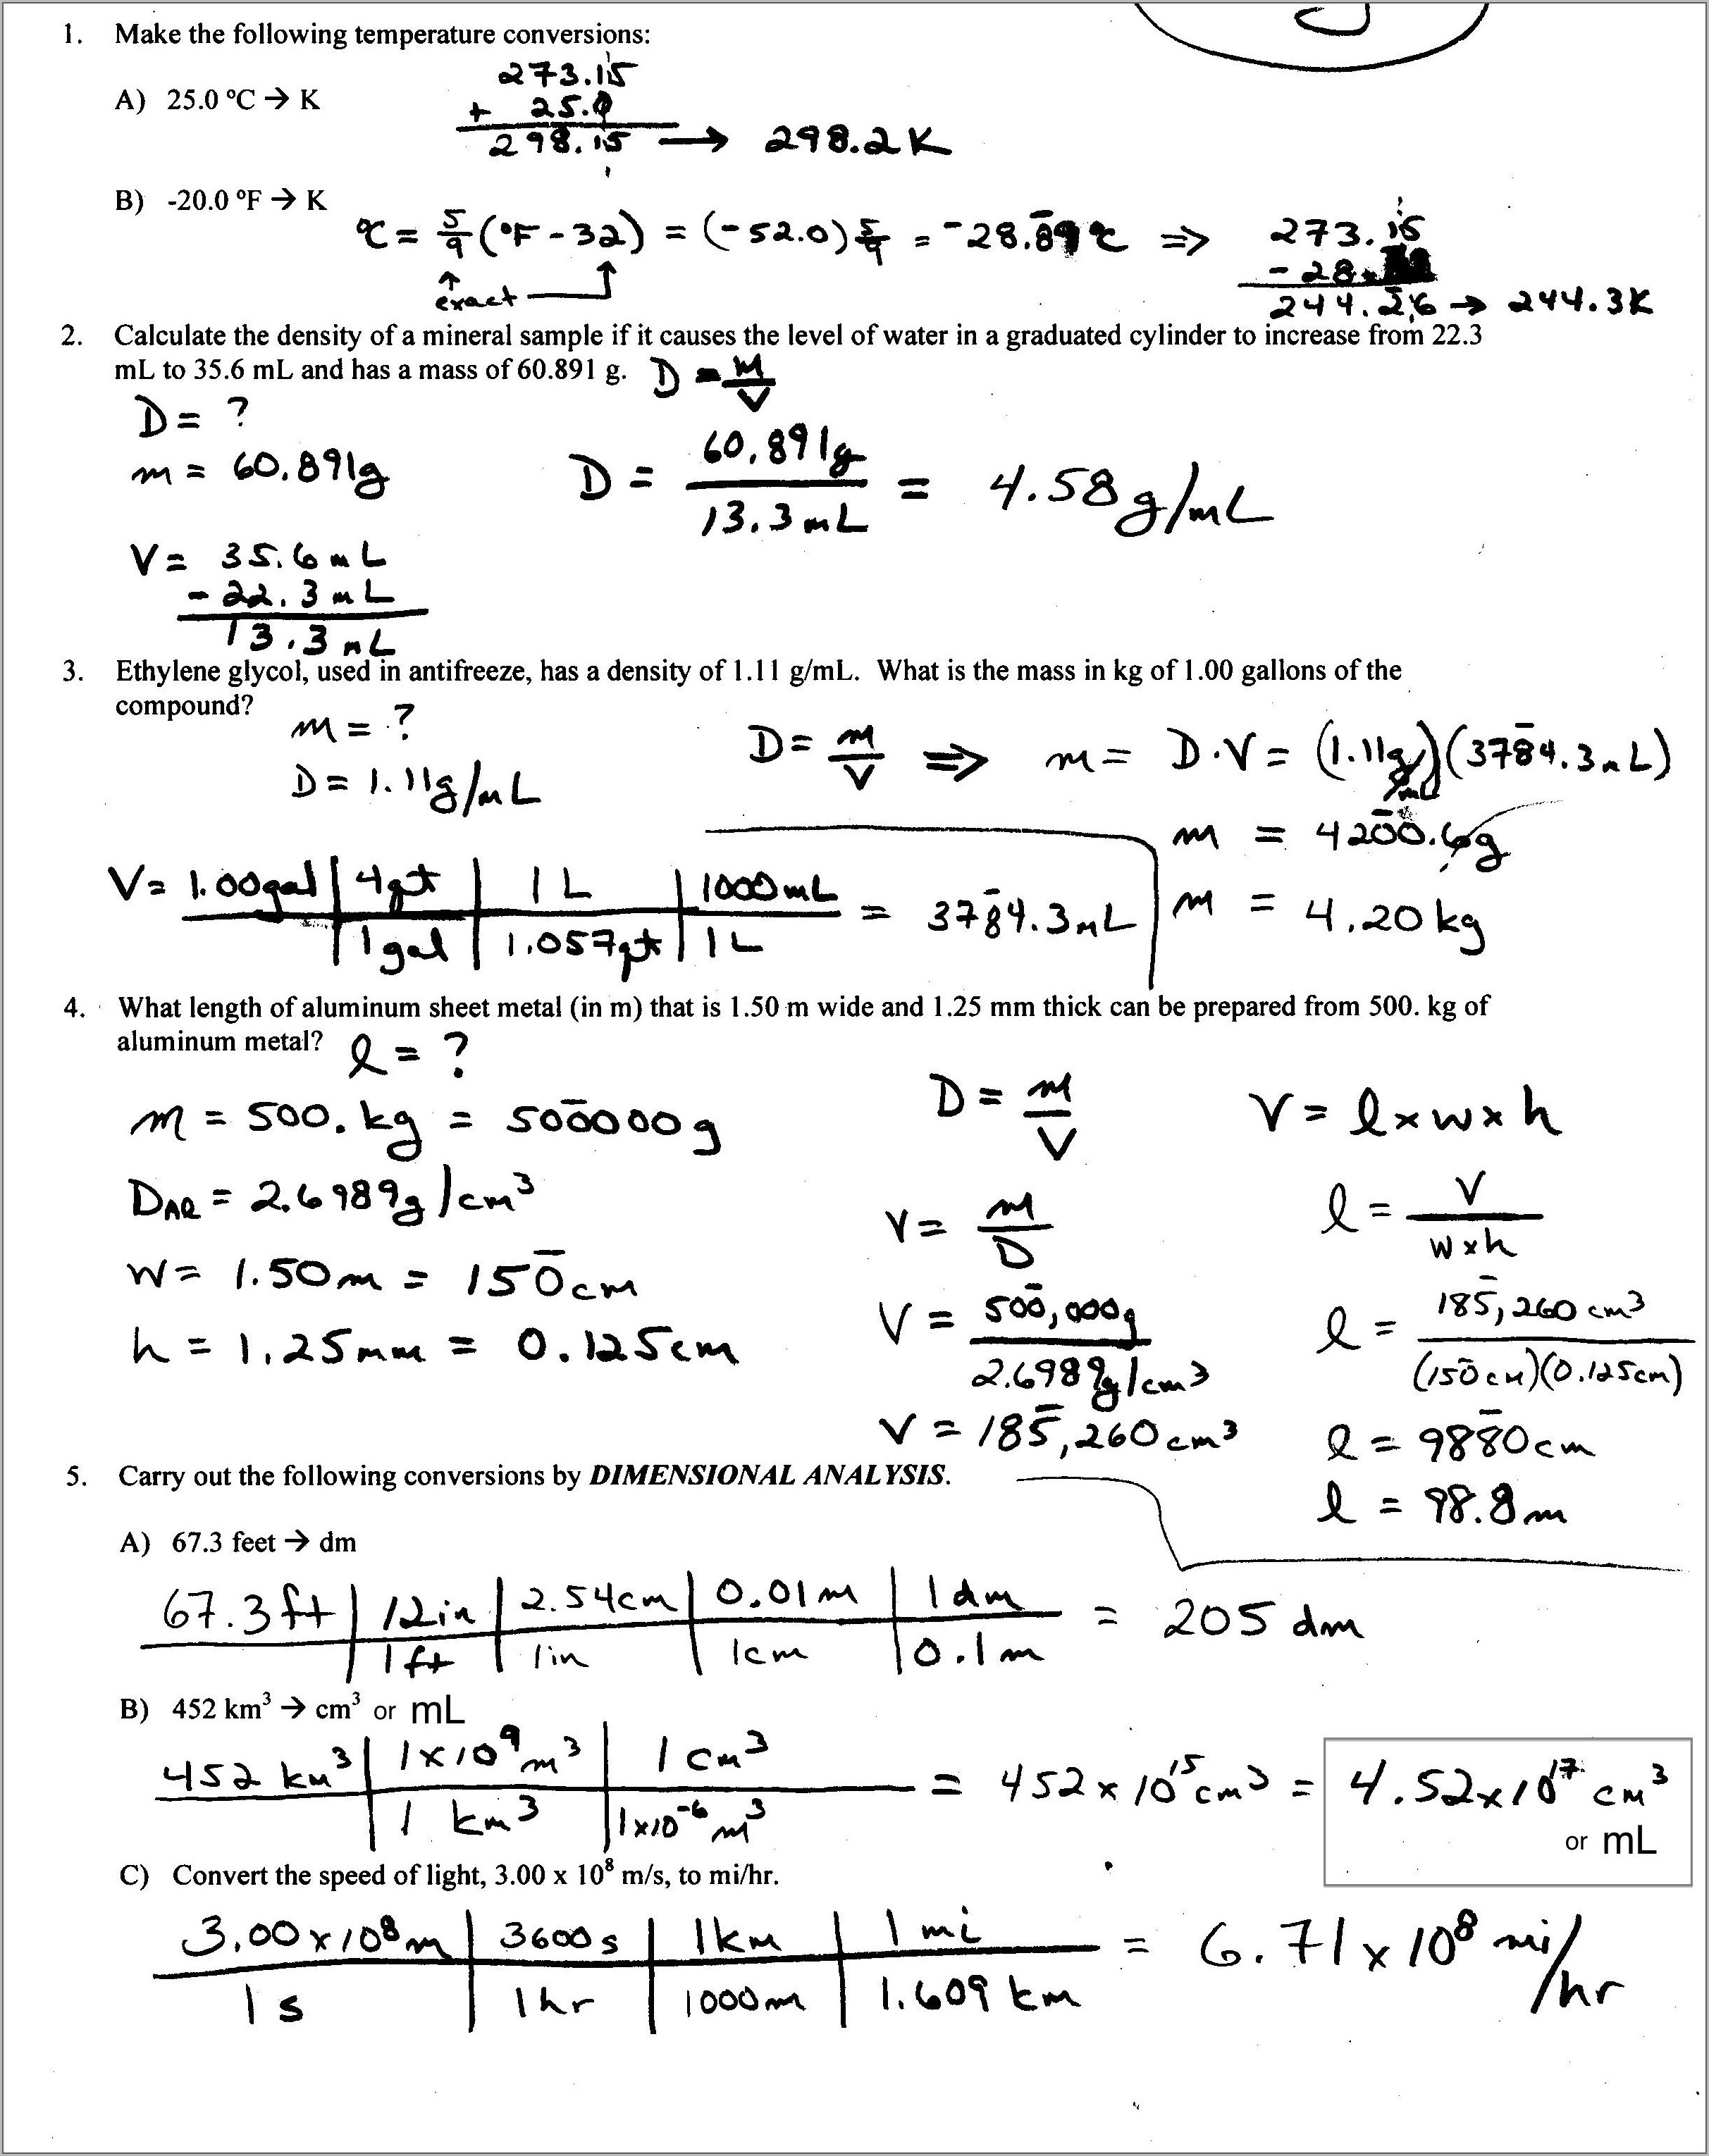 5th Grade Math Worksheets Volume